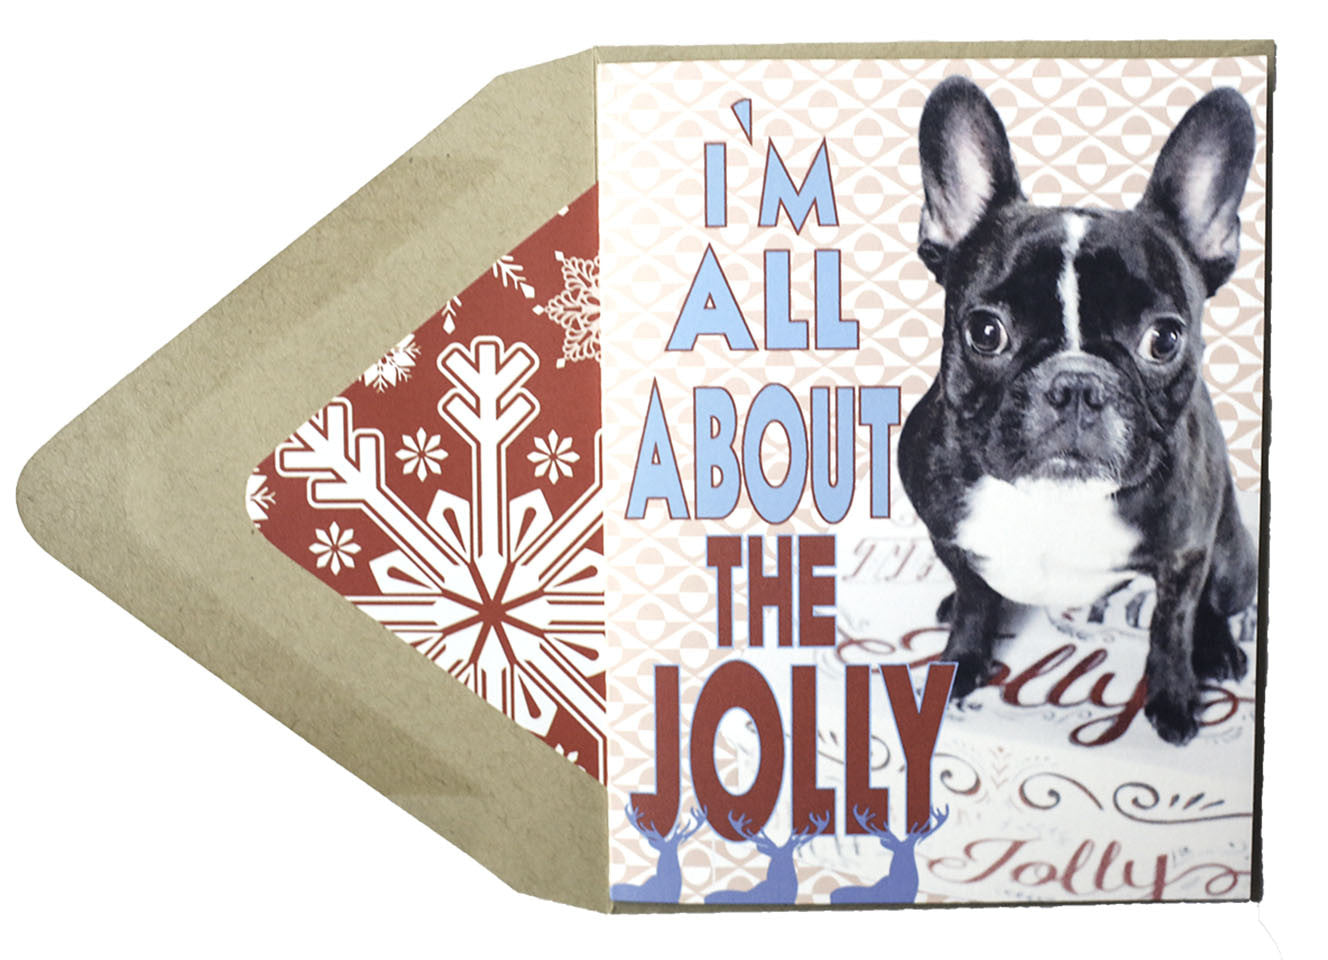 All About the Jolly : Christmas Card - Dog Series - Stilldez